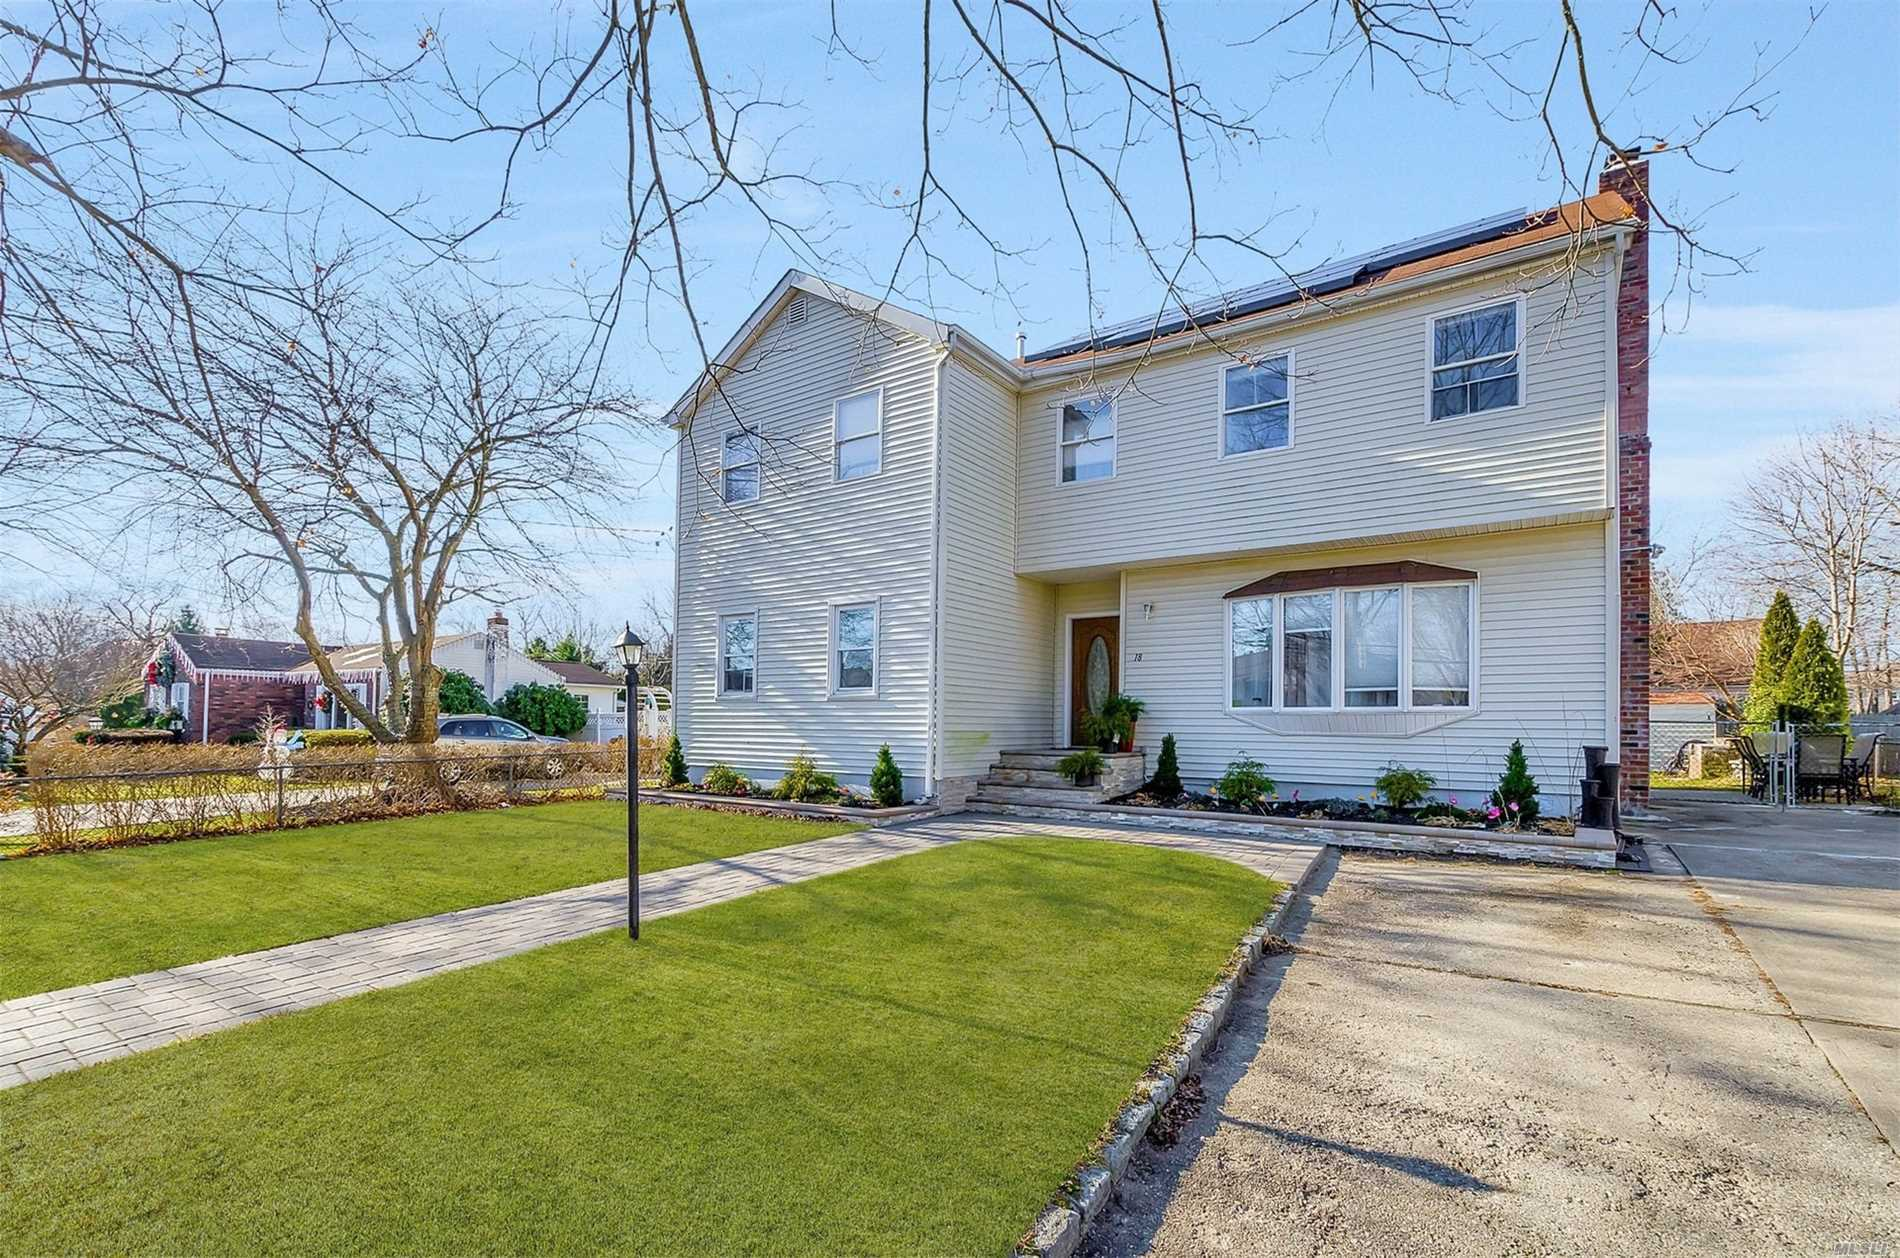 Magnificent Over-Sized 6 Bdrm Colonial Updated Roof Windows & Siding Custom Pavers Walkway & Front Steps Large Cement Driveway W/Cobble Stone Border Open Flr Plan Hrdwd Flrs & Recessed Lighting Throughout Beautiful Fire Place Updated Kit With Granite Counter Tops Ss Apli Lots Of Cabinet & Counter Space Breakfast Bar Custom Tile Backslash Large Bdrms 2 Updated Bths Full Basement W/High Ceilings Gas Heat